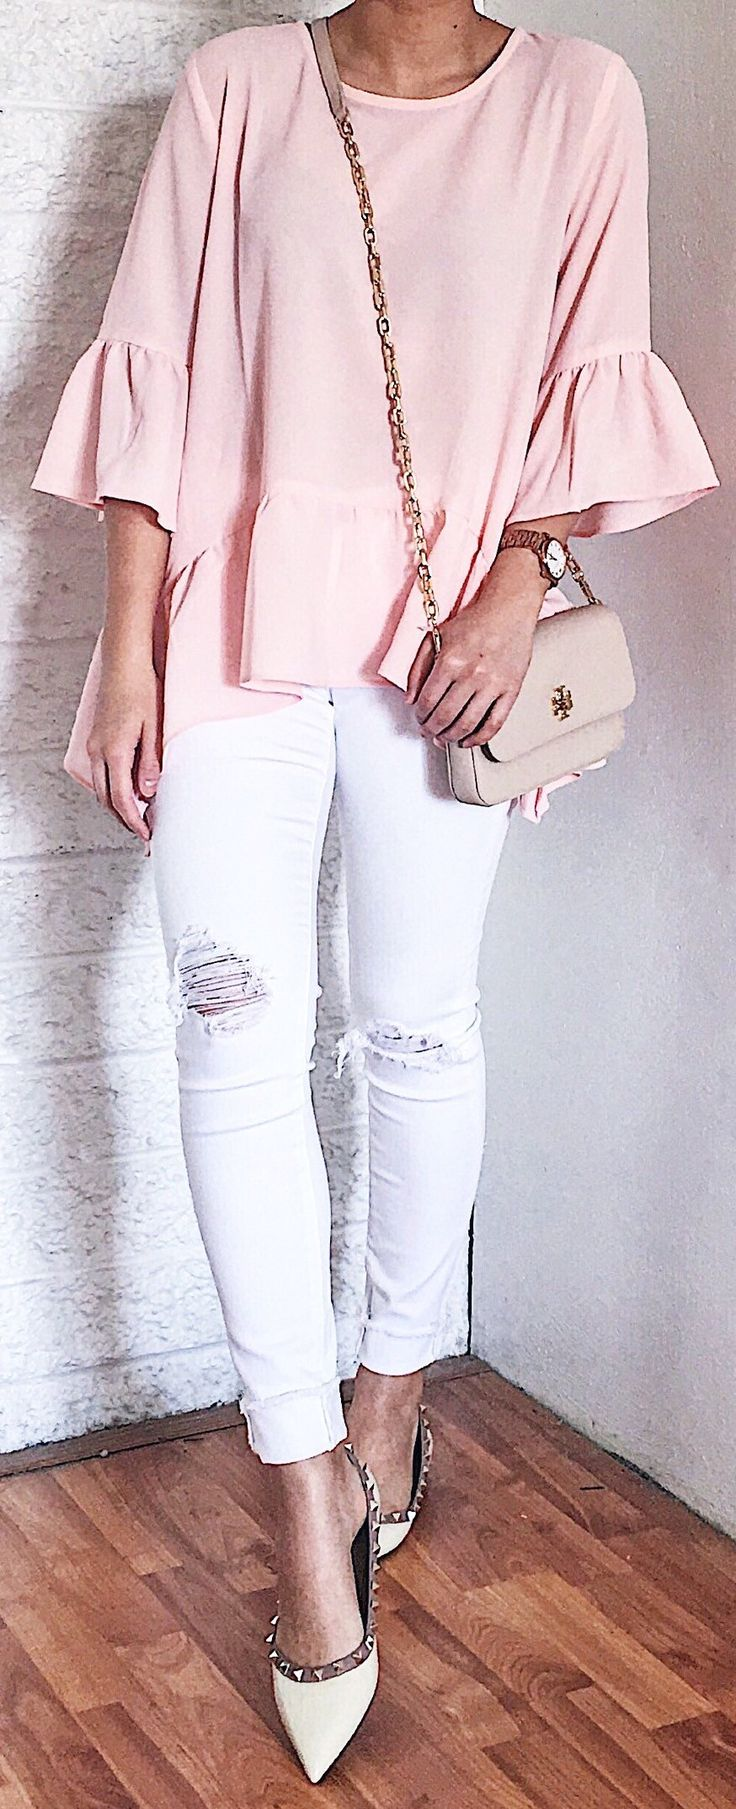 #summer #outfits Y'all Already Know I Wouldn't Pass Up A Blush Pink Top With A Ruffle Hem  I Love How Flowy This Top Is! As A Tip, This Top Runs Extremely Big So Order A Size Down! I Got It In An XS And It Fits More Like A S/M! // Pink Ruffle Blouse + White Ripped Jeans + White Pumps